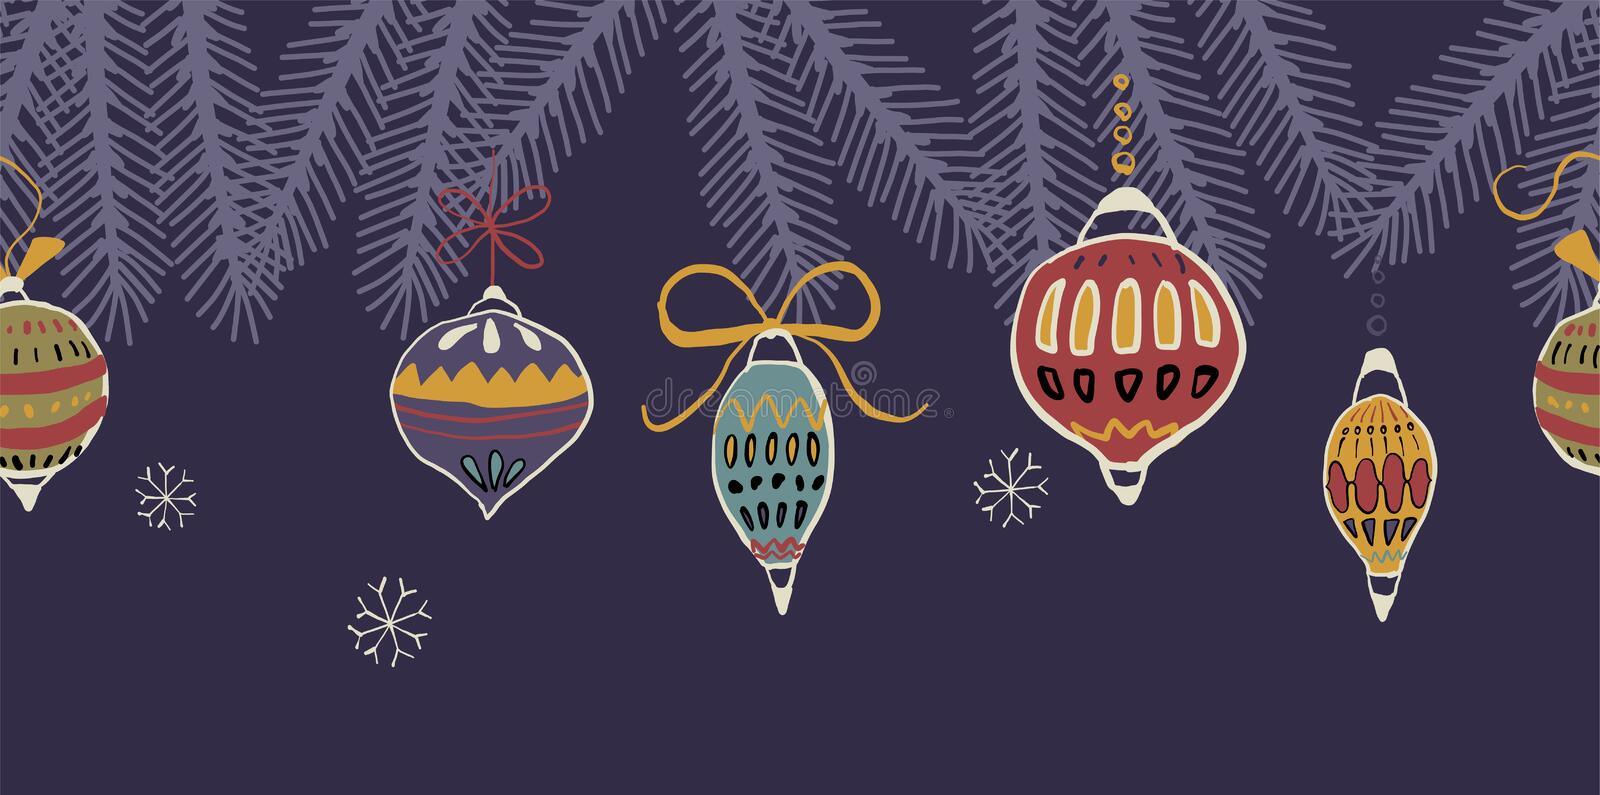 A Vector Illustration of Christmas Ornaments vector illustration